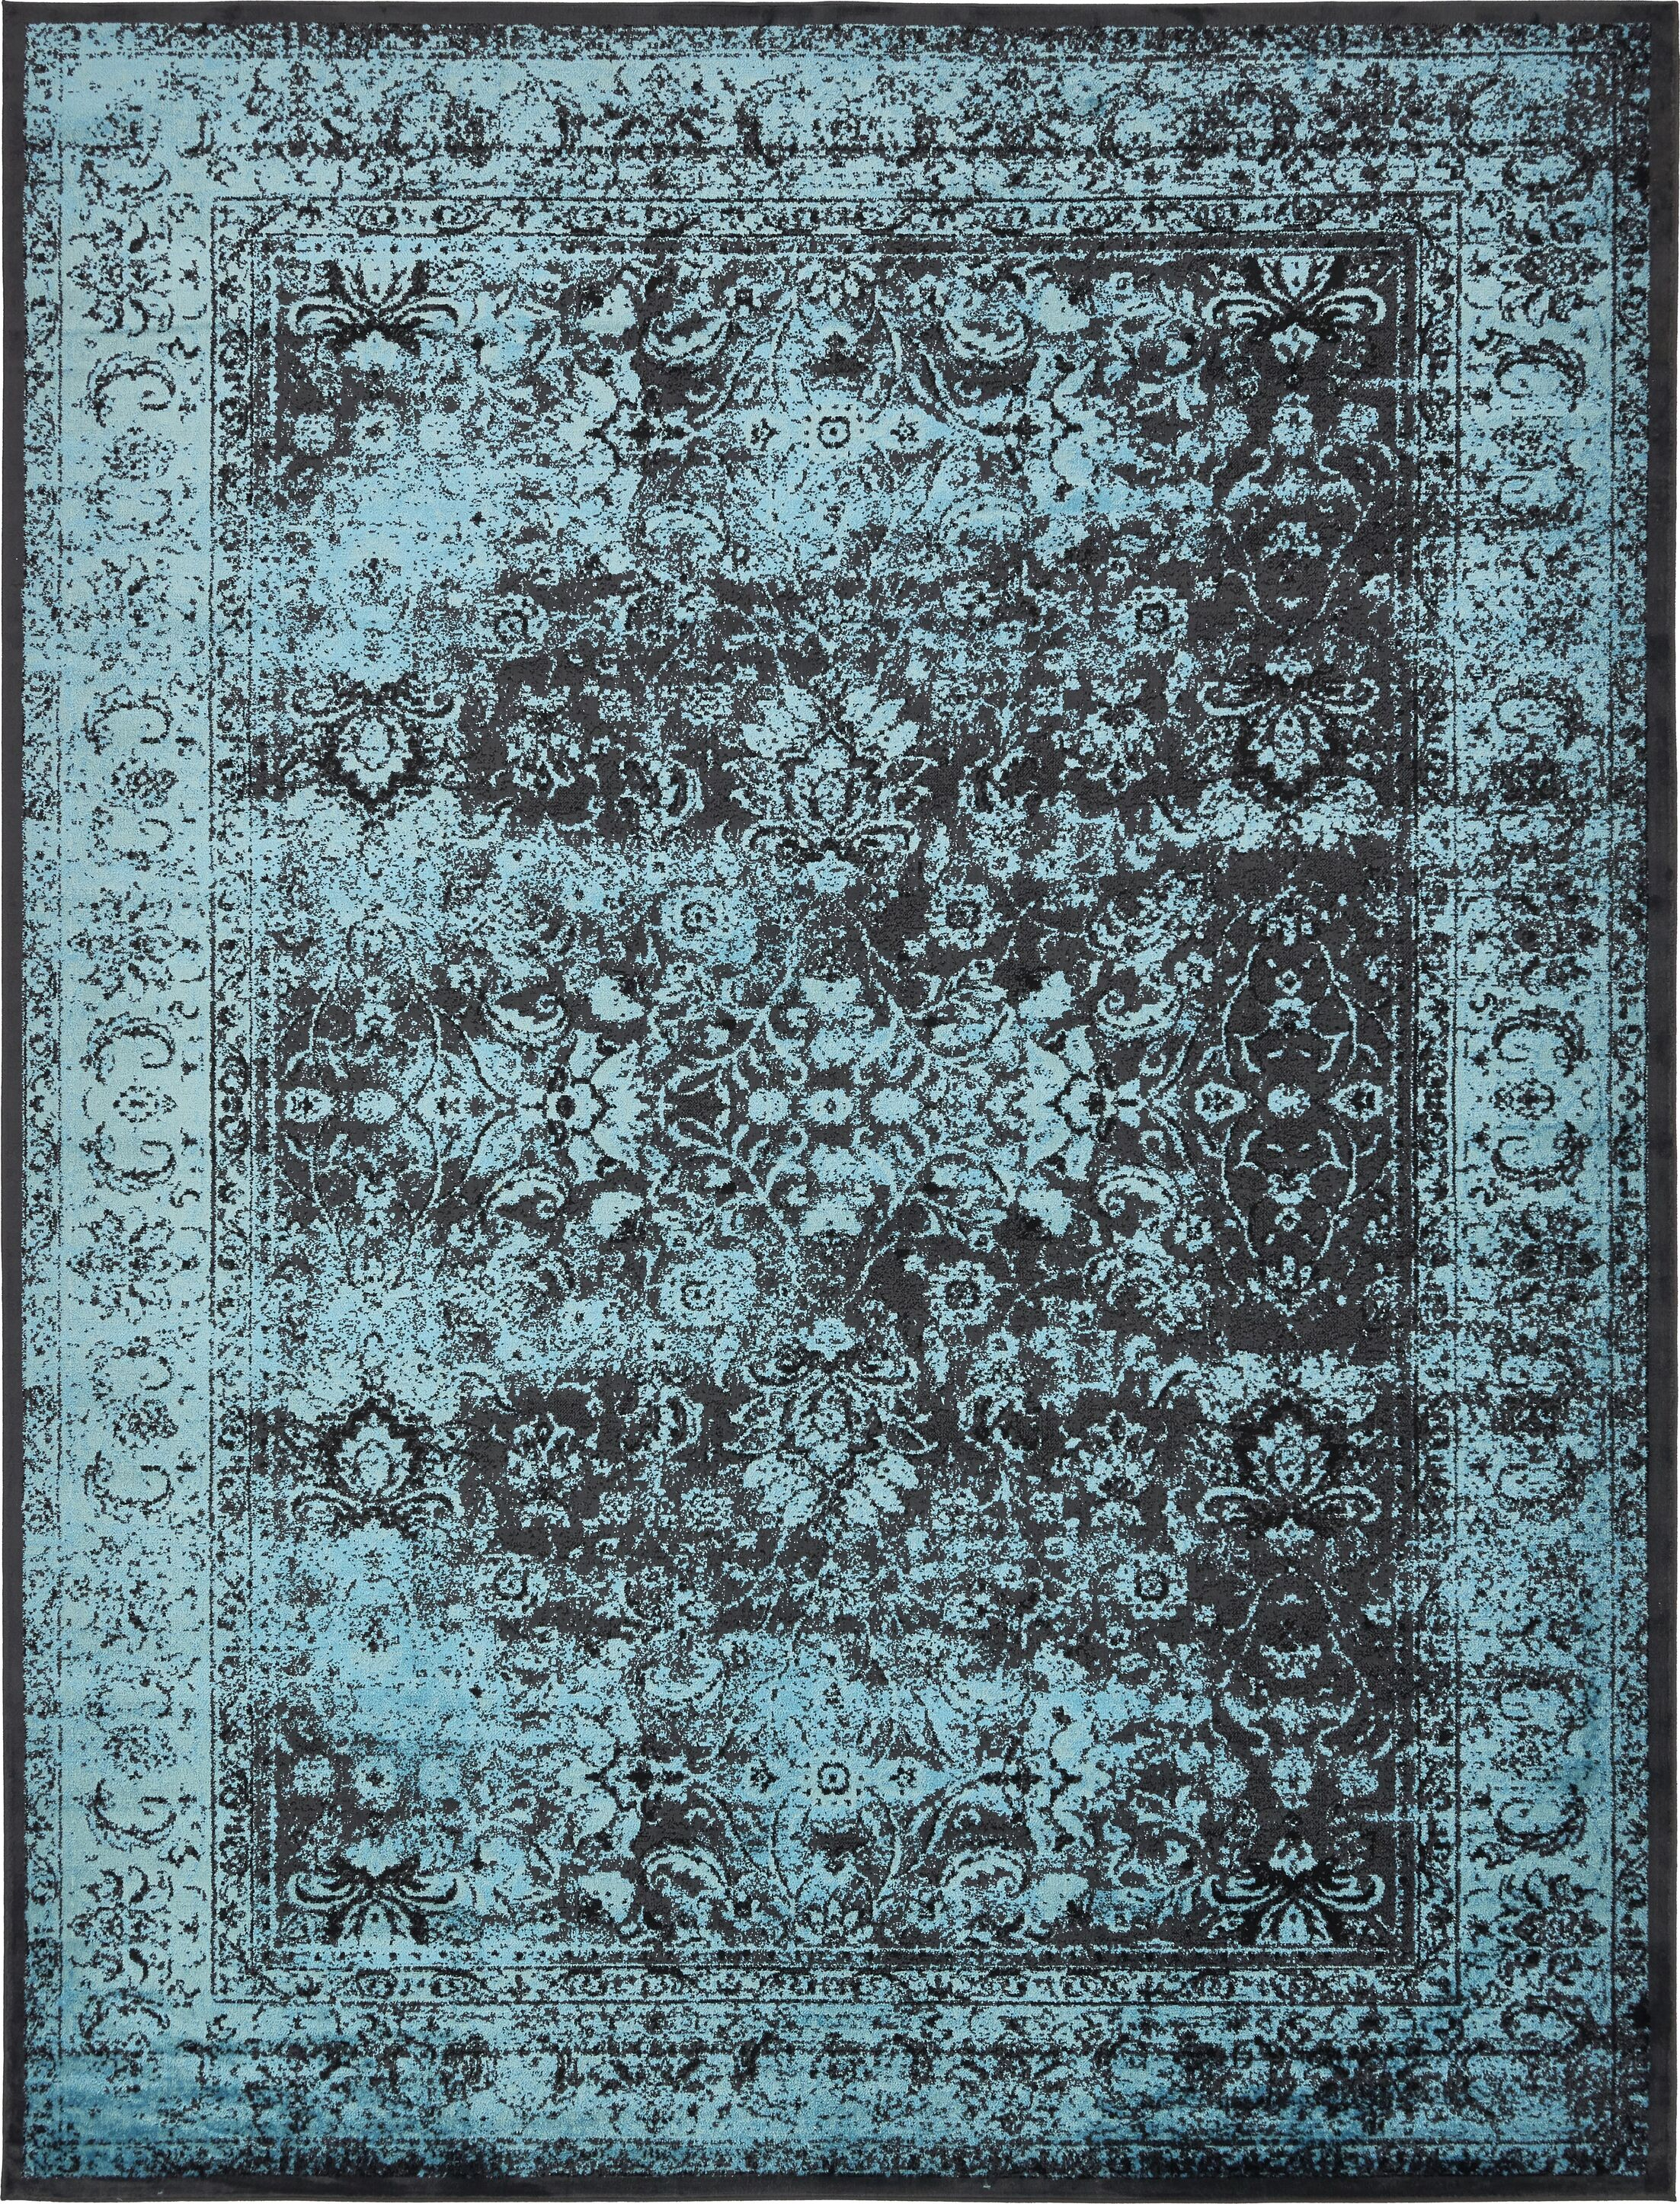 Neuilly Blue/Black Area Rug Rug Size: 13' x 19'8